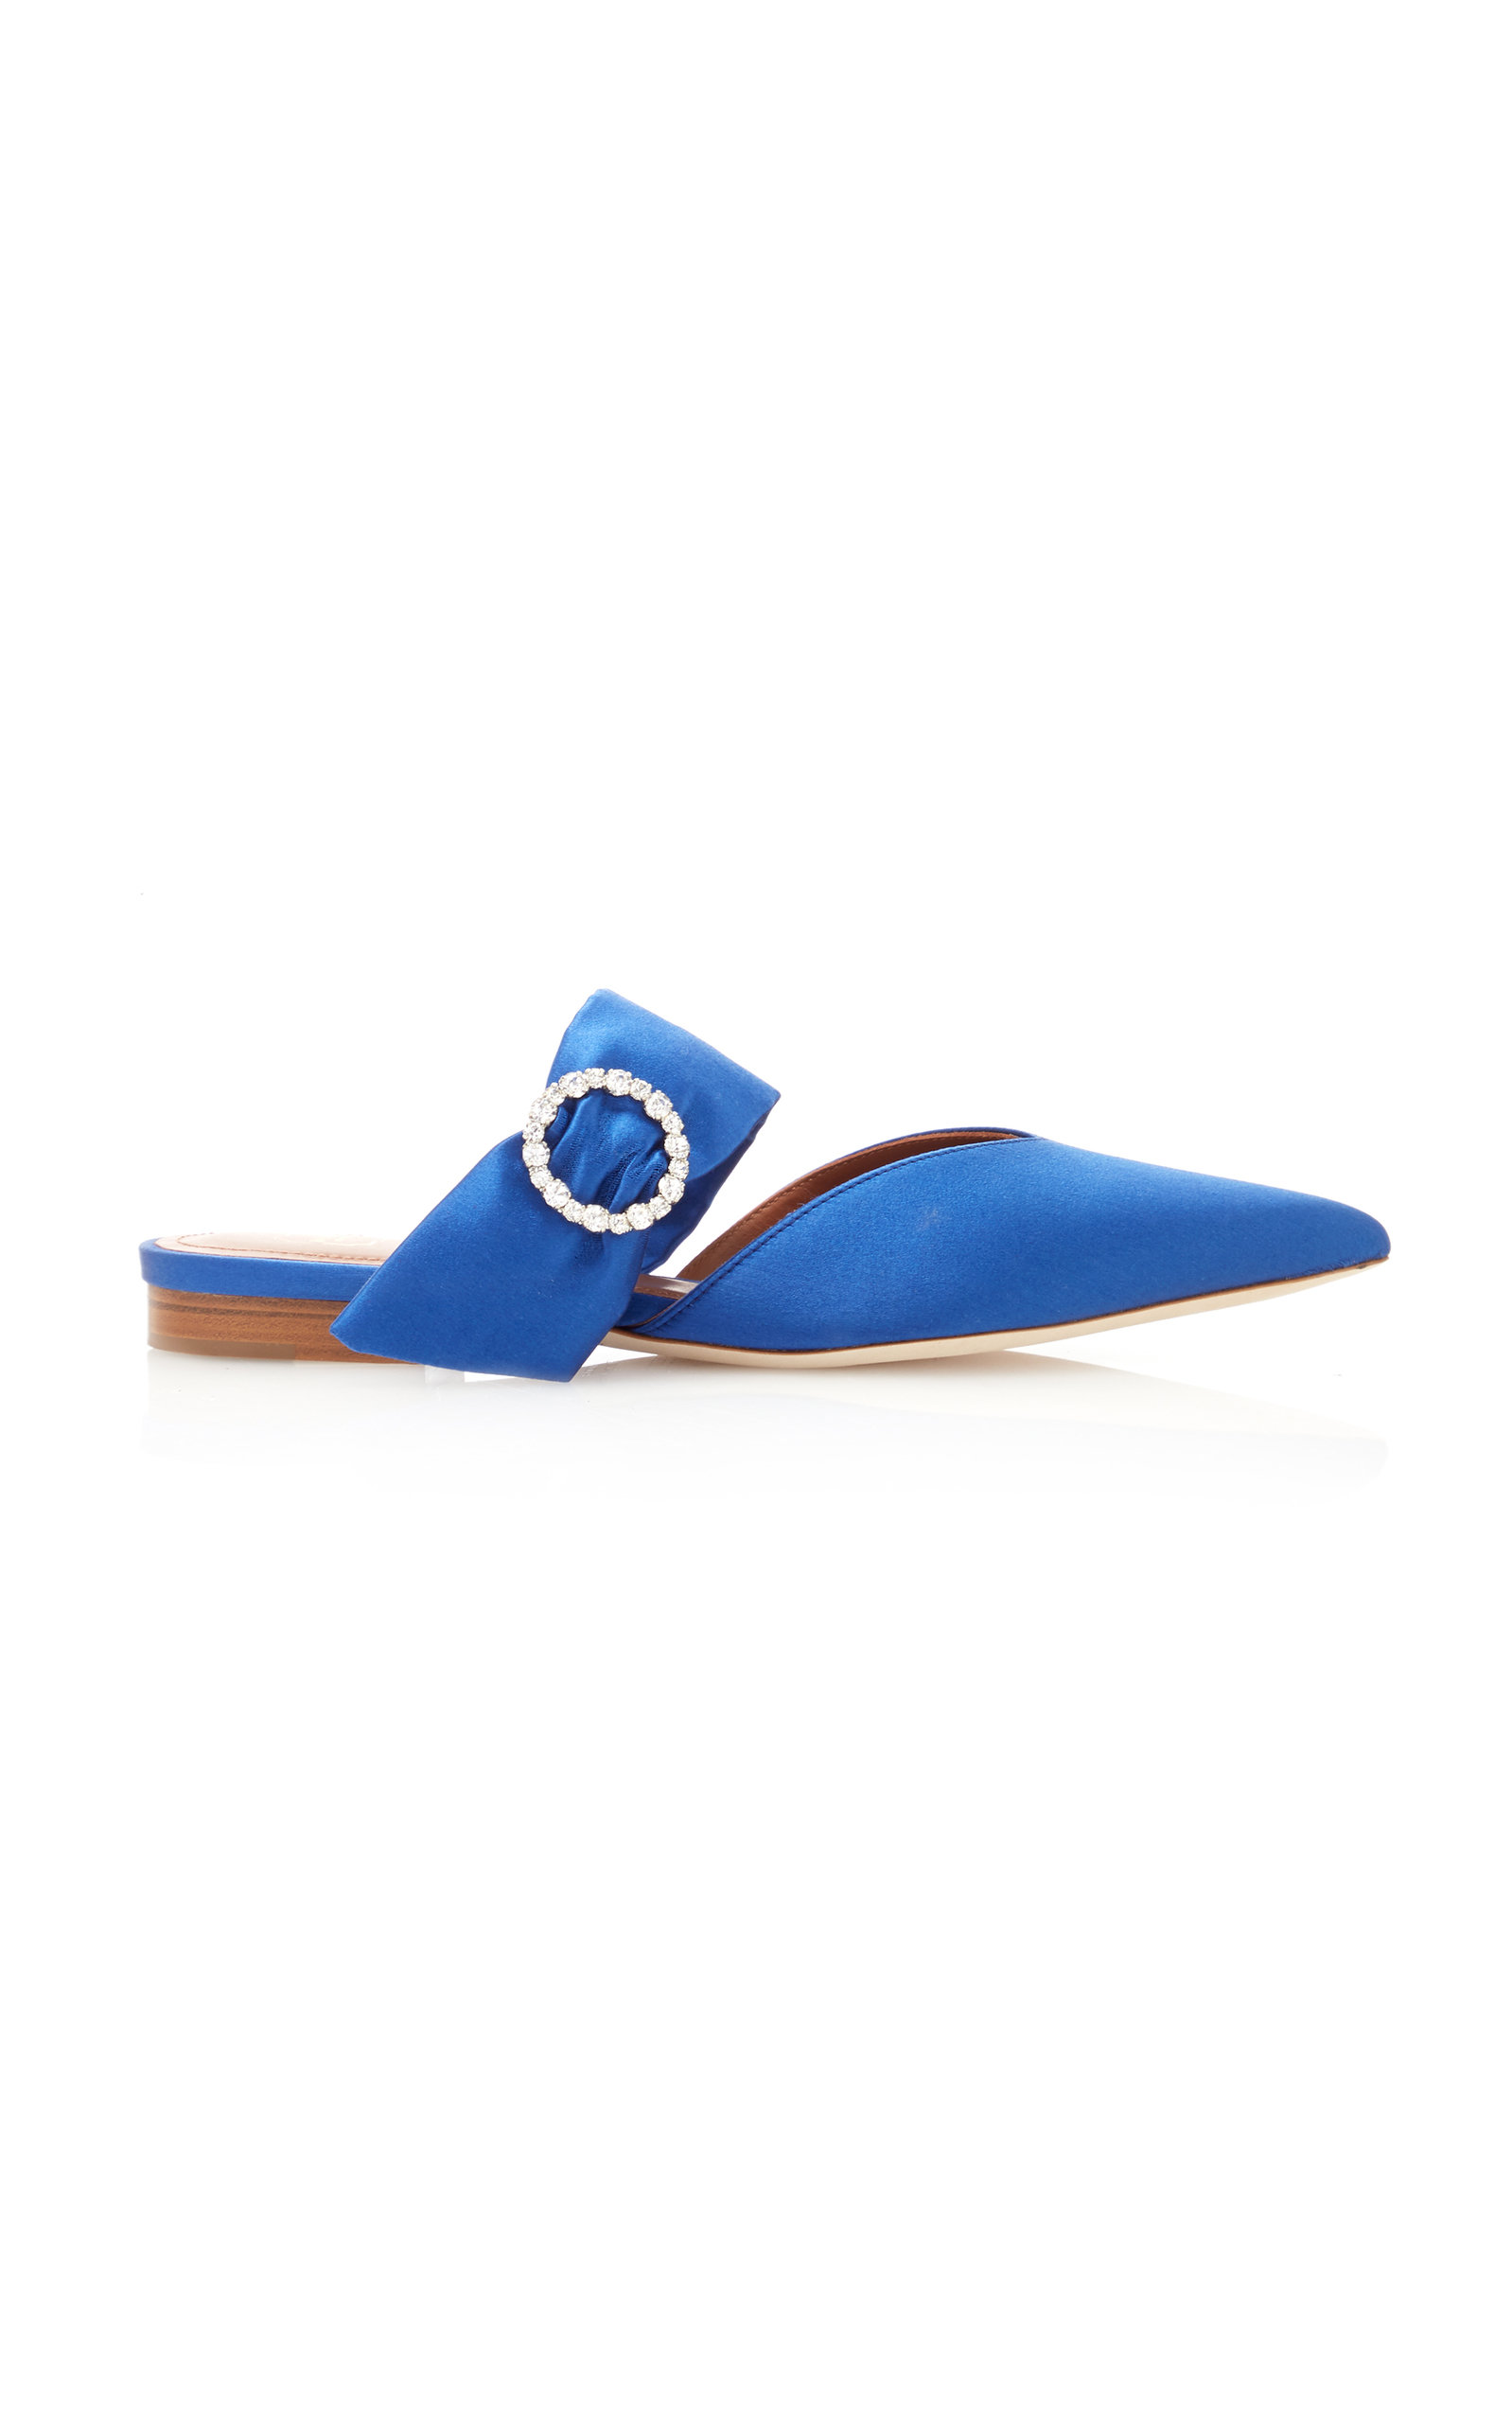 Malone Souliers   Malone Souliers Maite Crystal-Embellished Satin Flats   Clouty